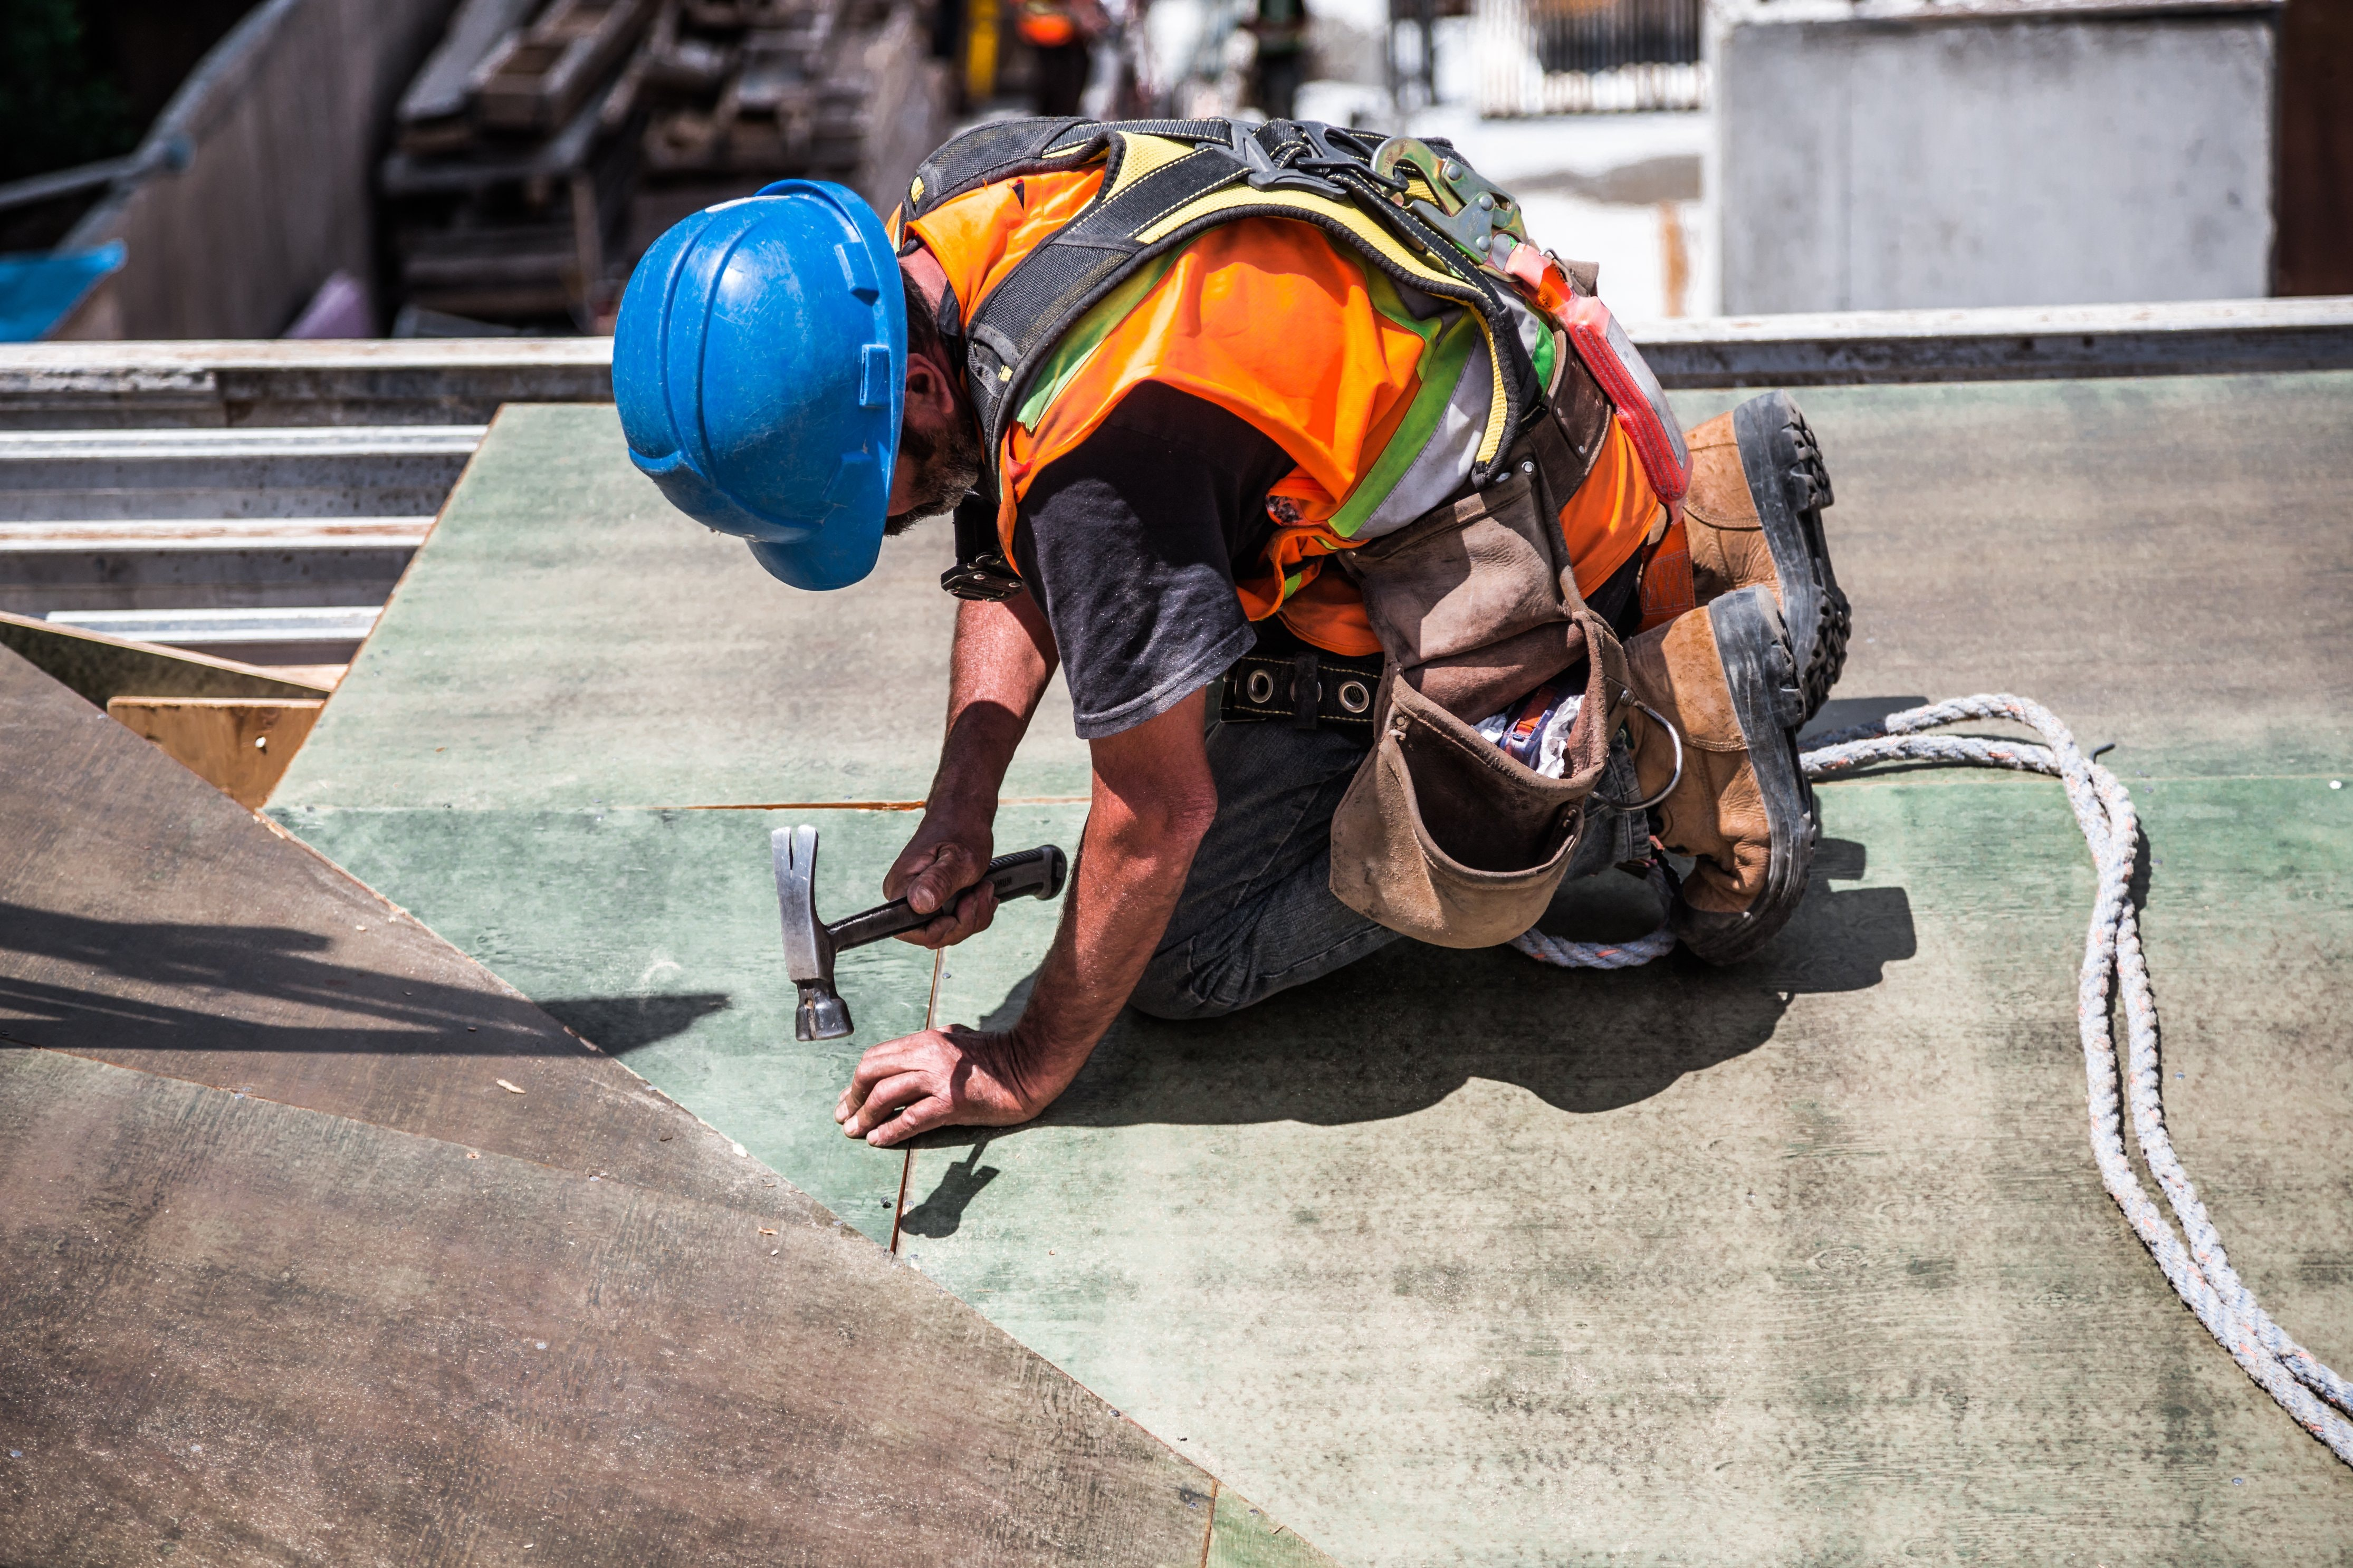 OSHA Construction Industry 10 Hour EQ+ Course Review & Competency Exam – $49.95